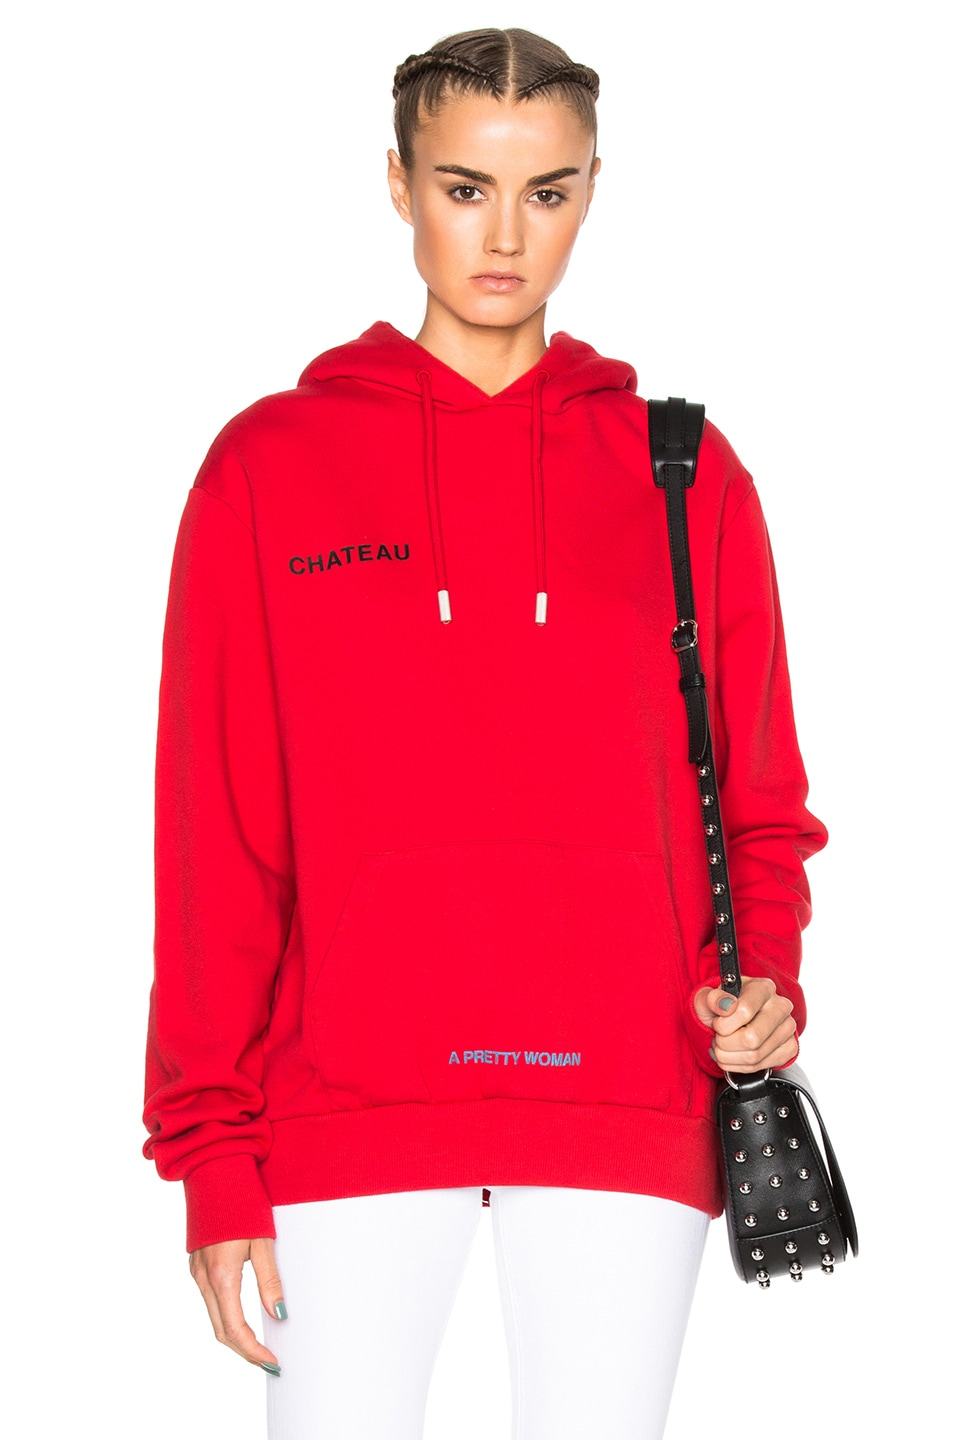 Image 1 of OFF-WHITE Chateau Hoodie in Red   Black 93e2c8bc7